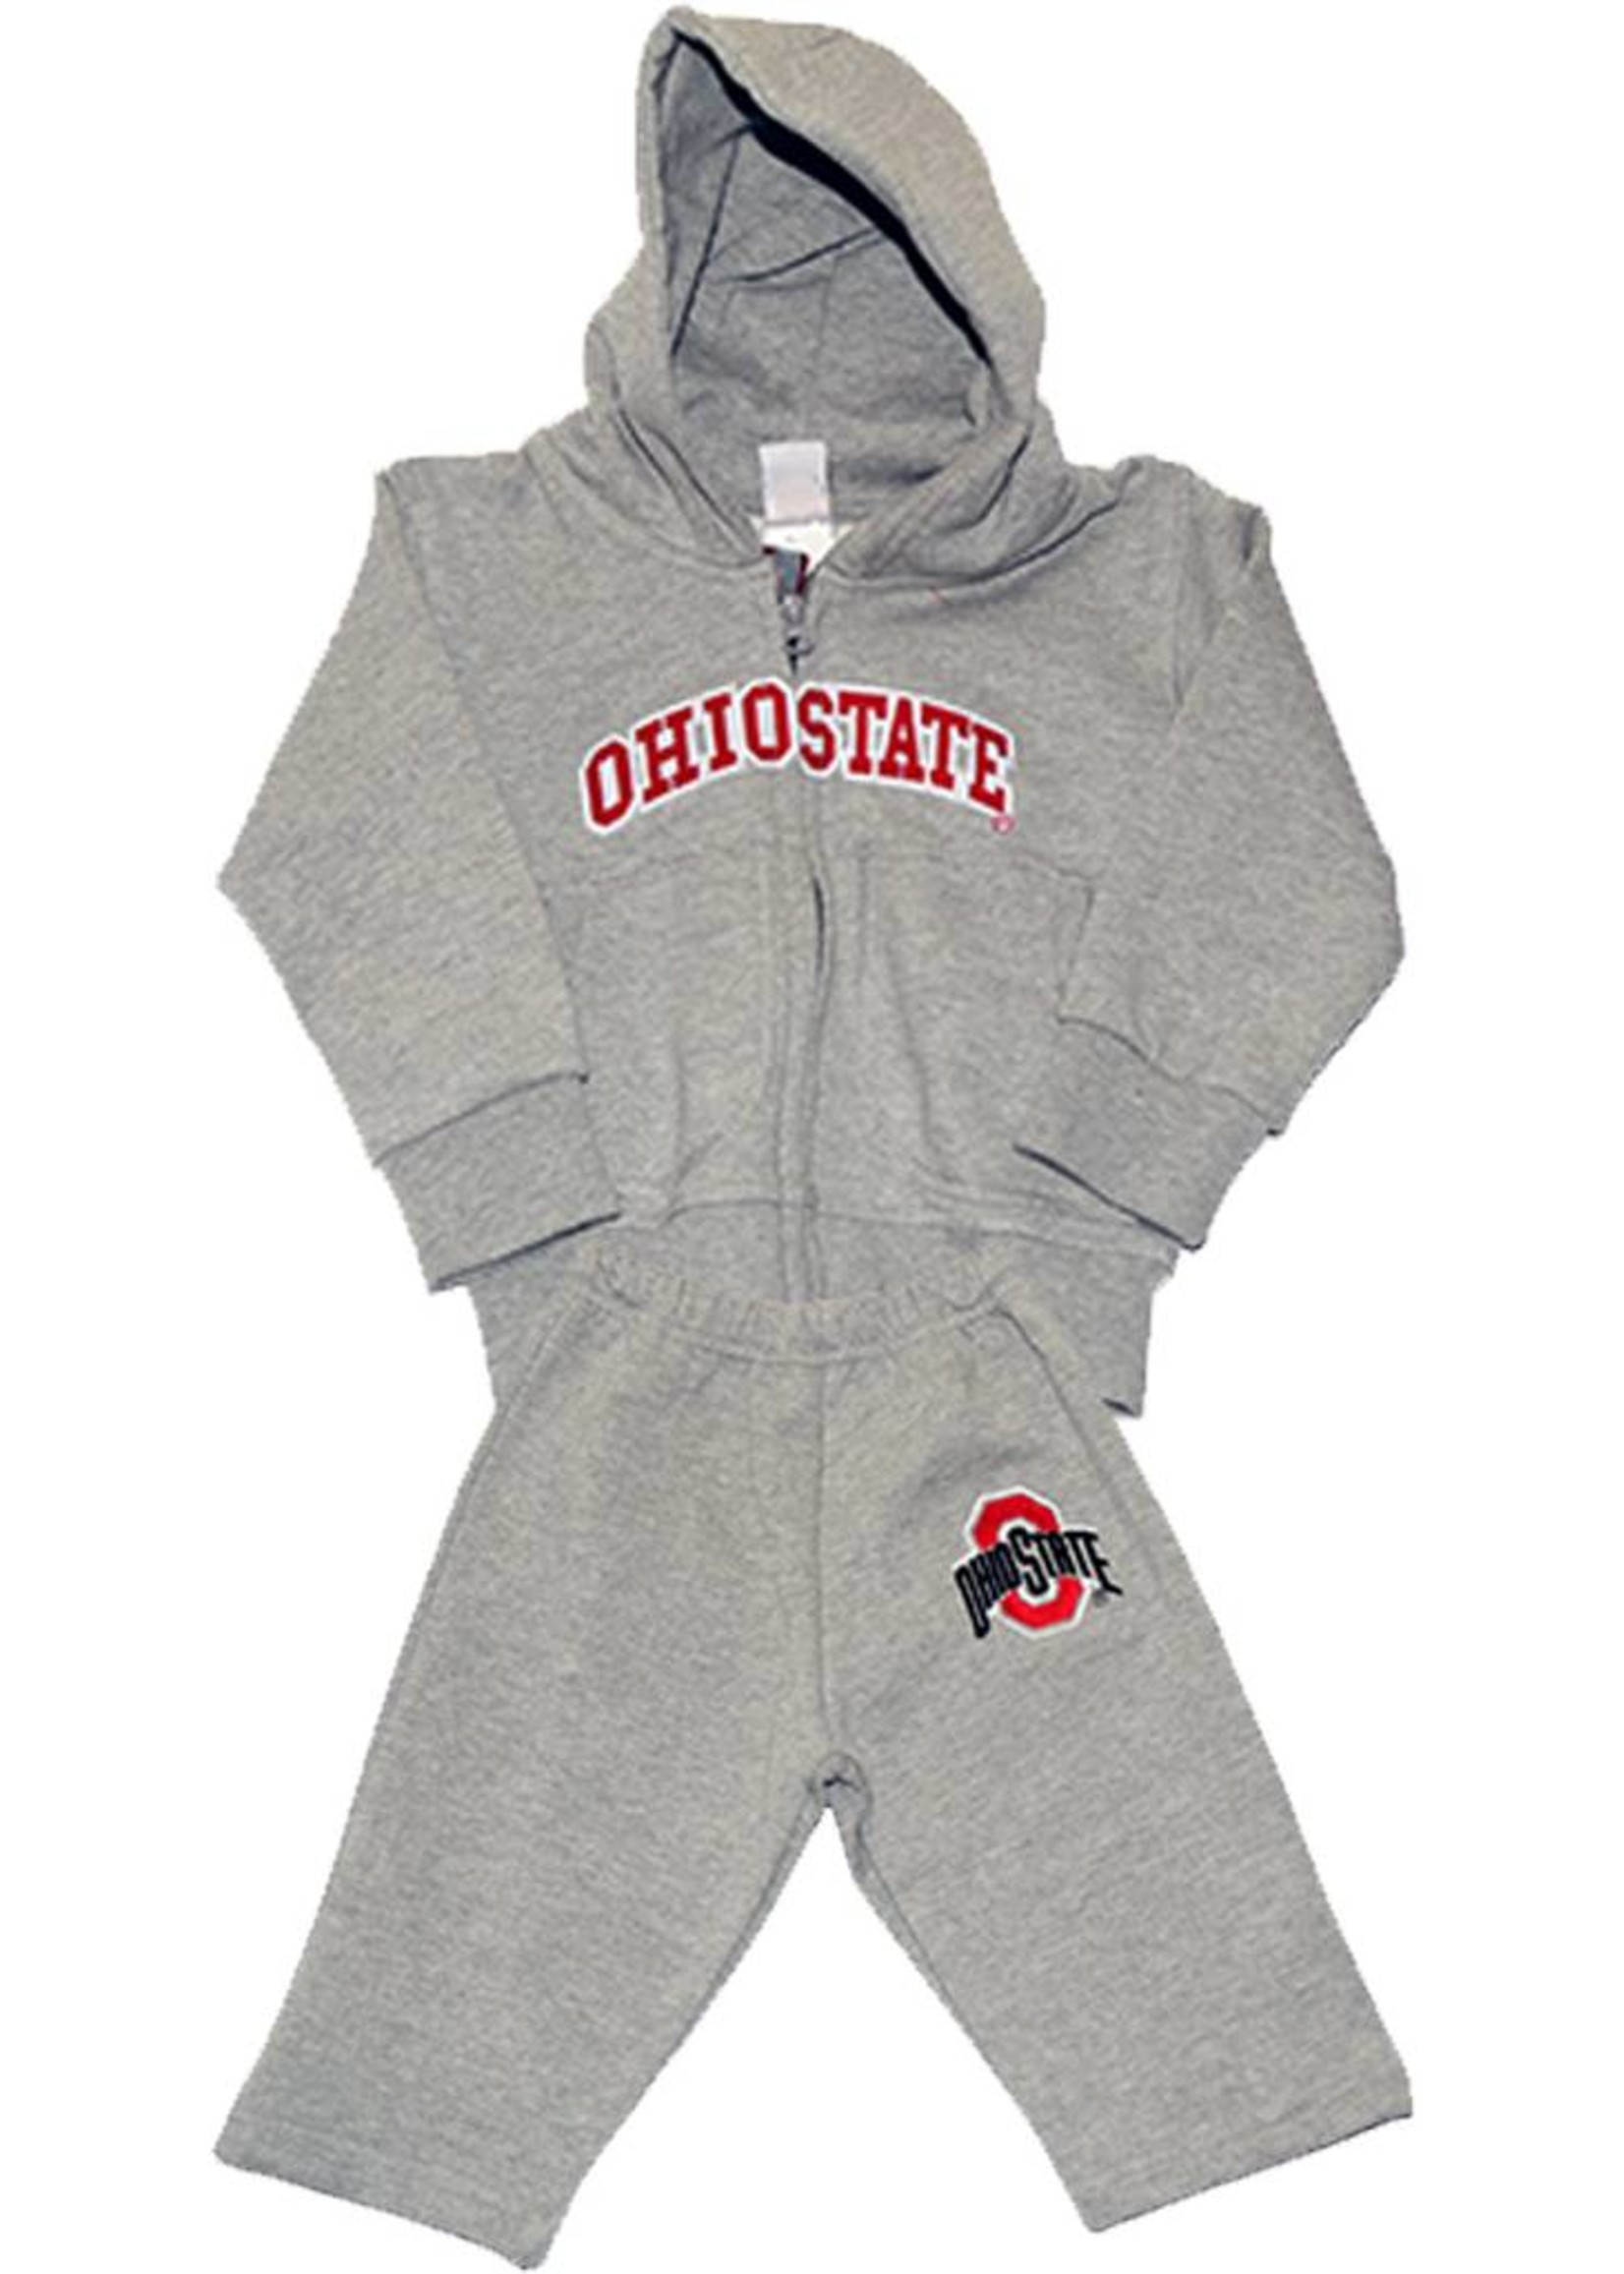 Ohio State University Toddler Fleece Hoodie & Pant Set